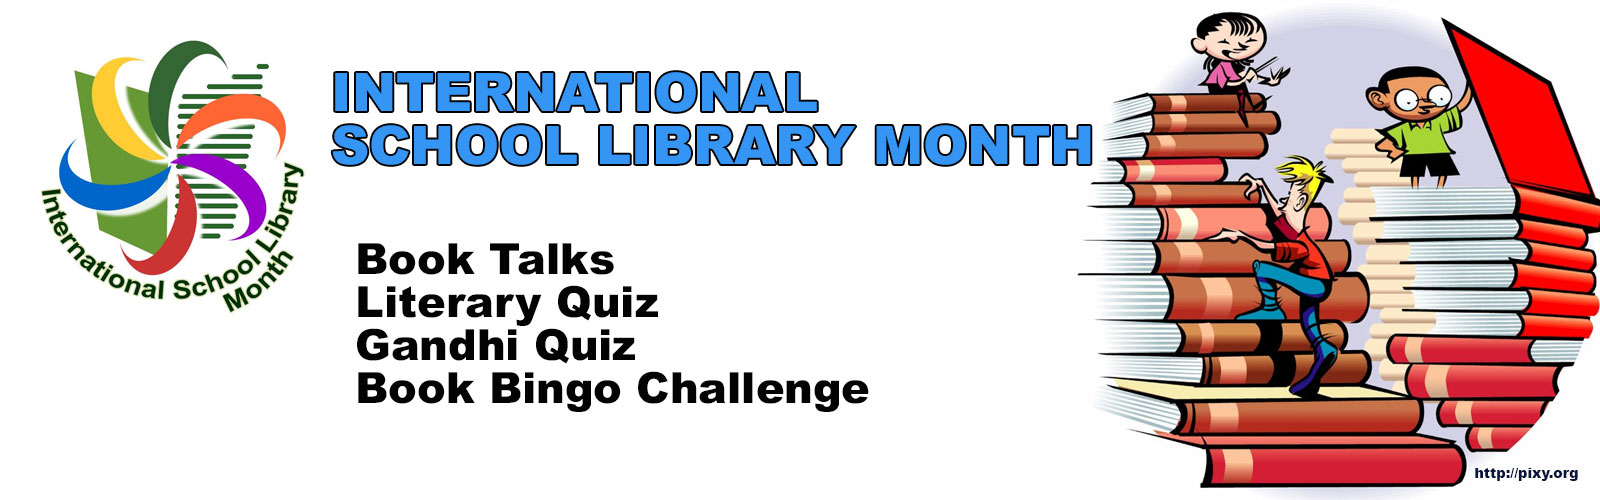 International School Library Month!